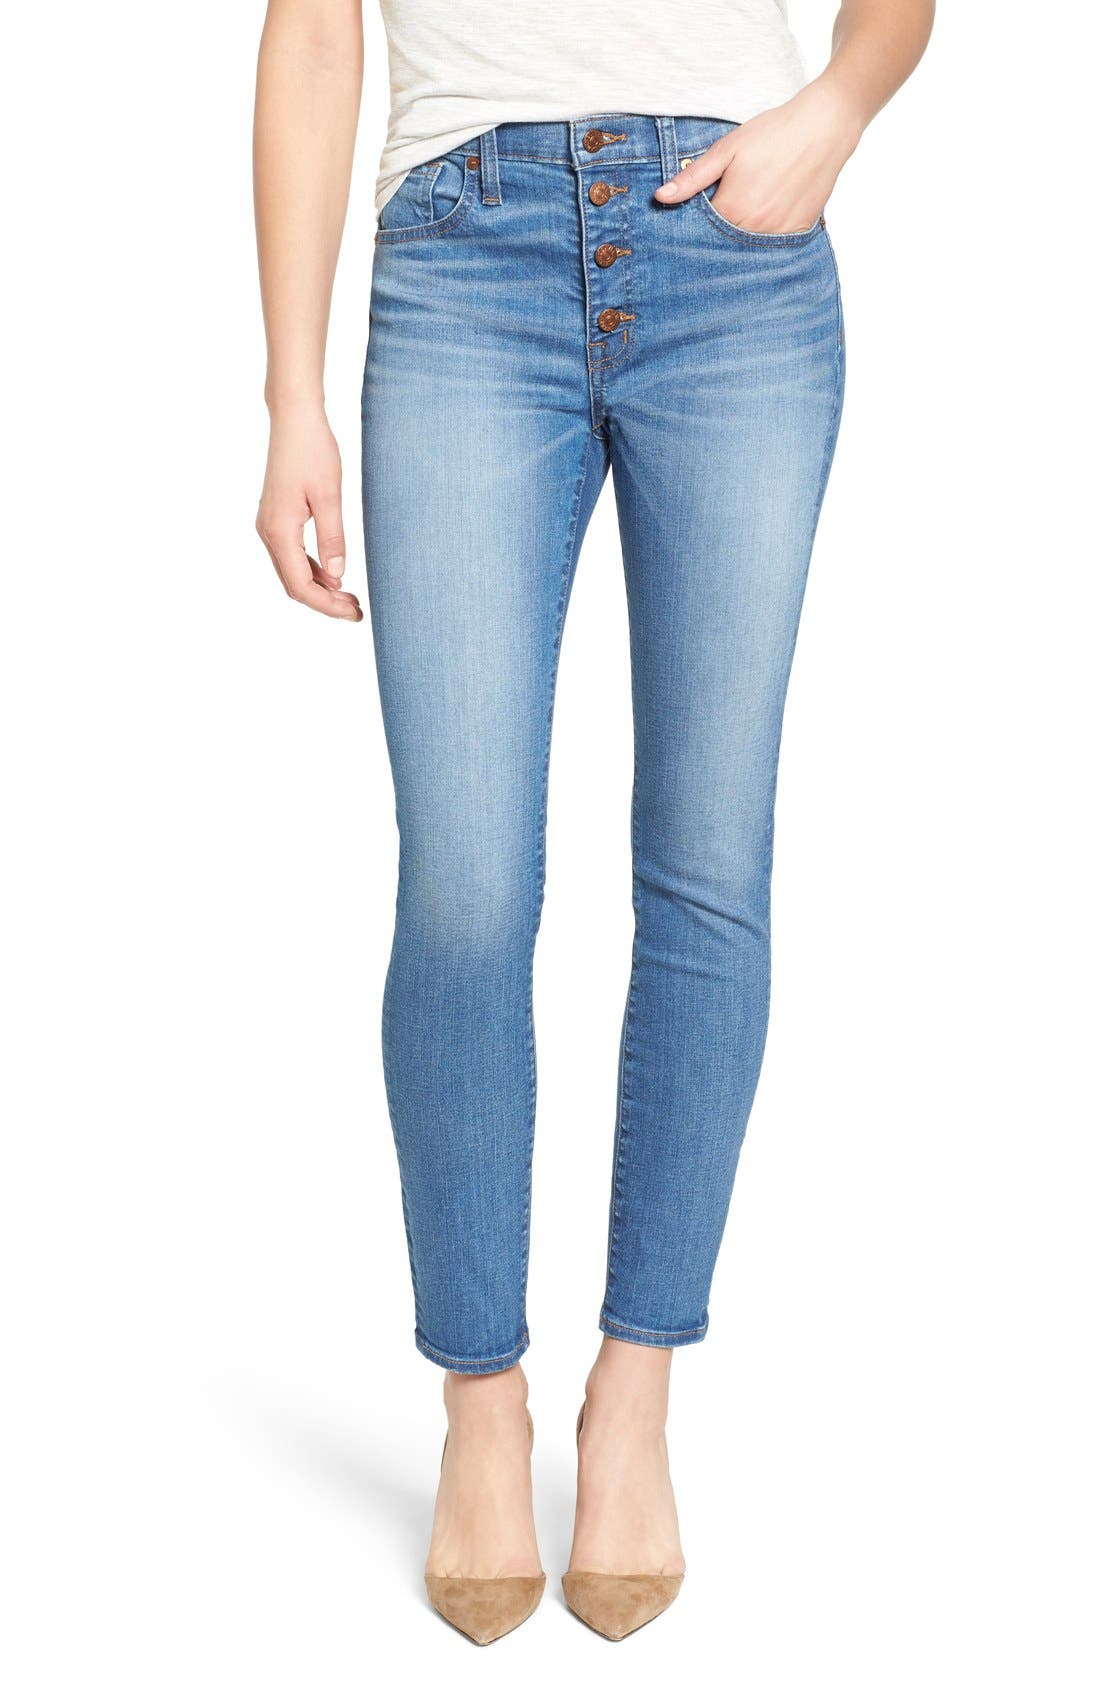 'High Riser - Button Through' Crop Skinny Skinny Jeans,                             Main thumbnail 1, color,                             406